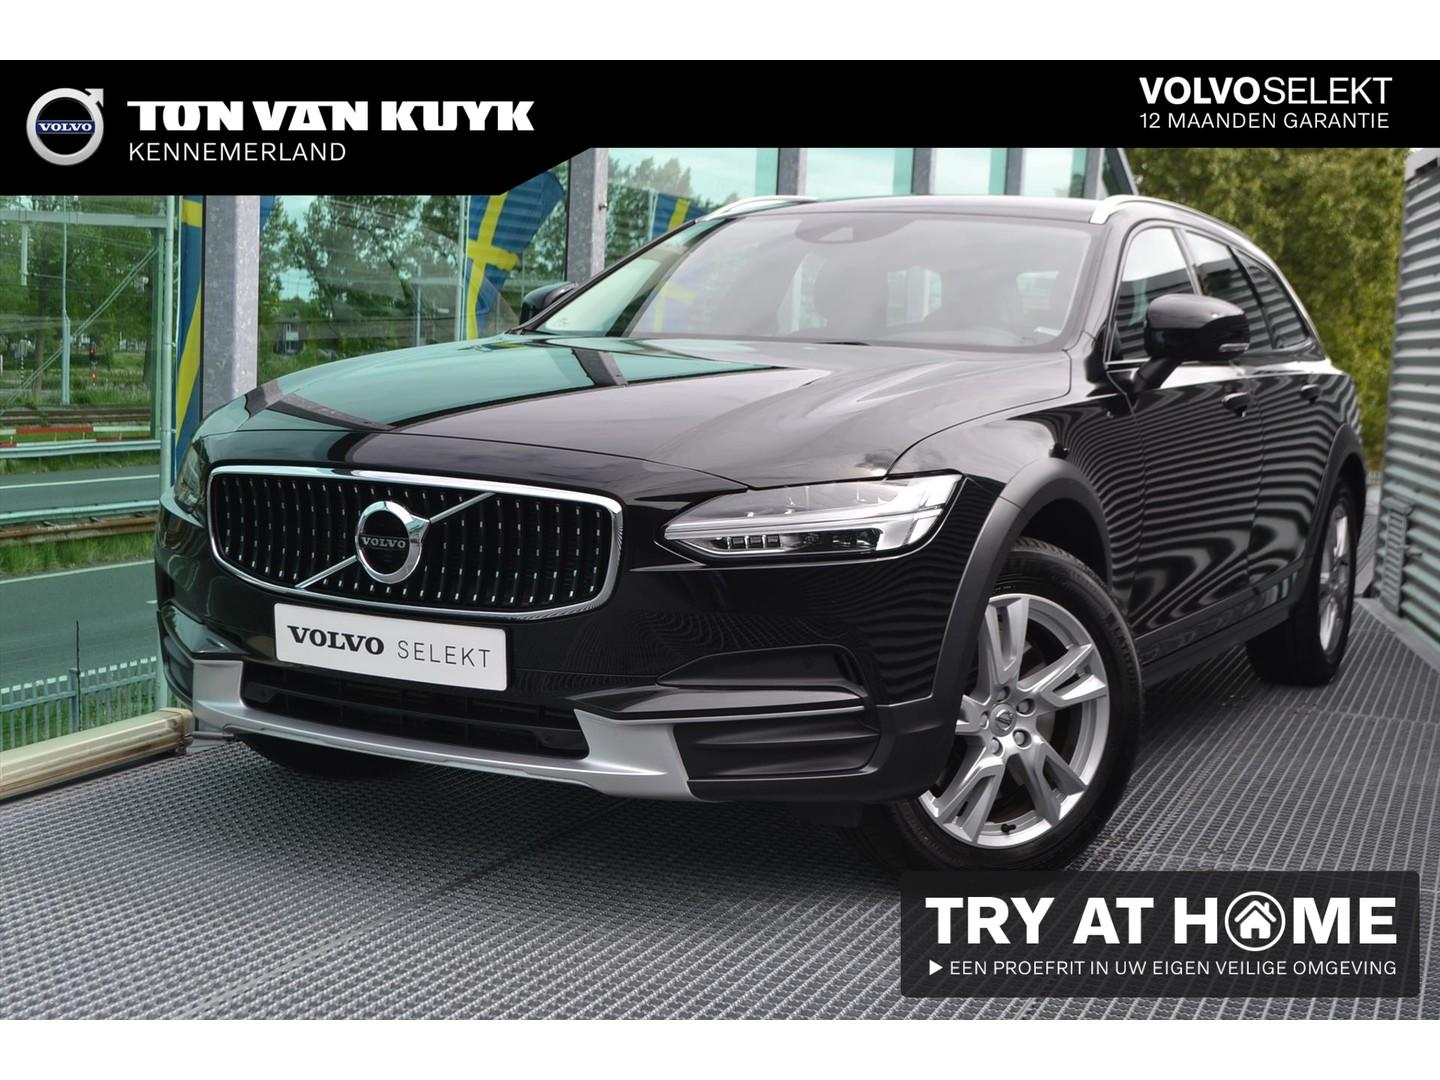 Volvo V90 cross country T5 254pk geartronic awd 90th anniversary edition